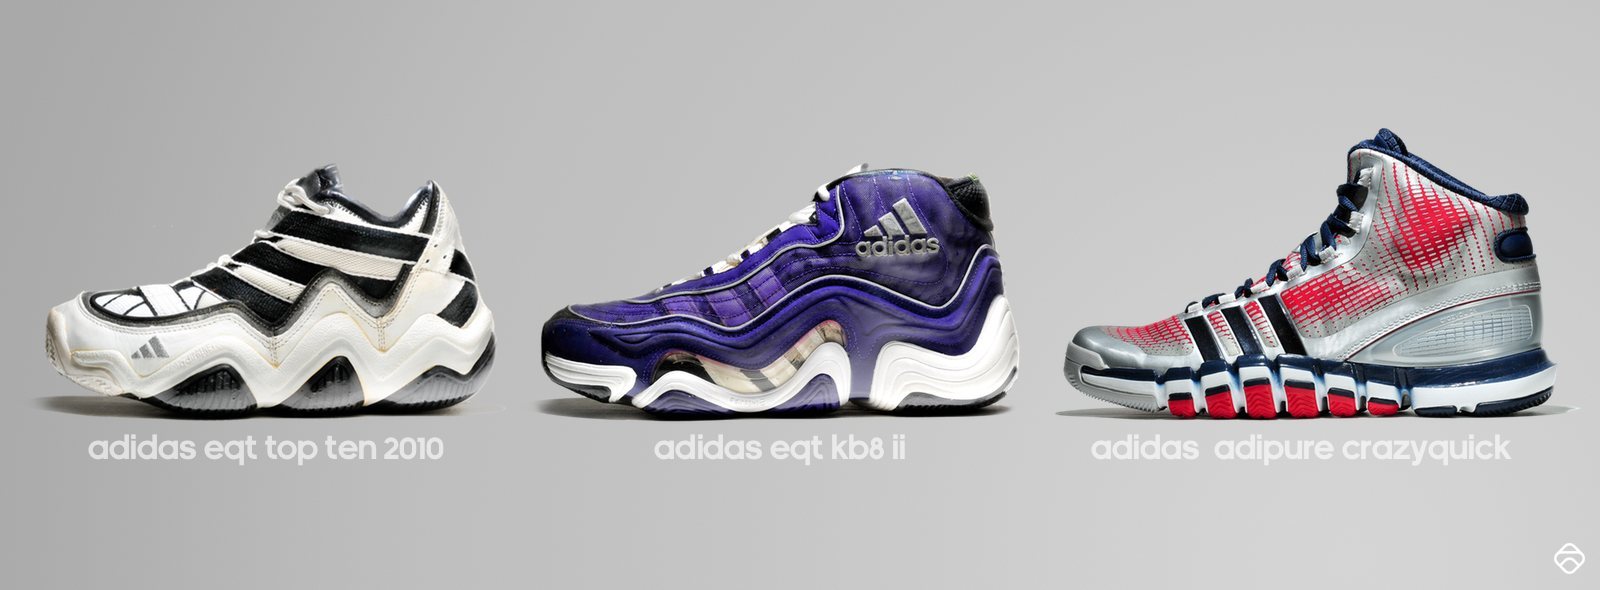 Adidas Eqt Shoes Price In India